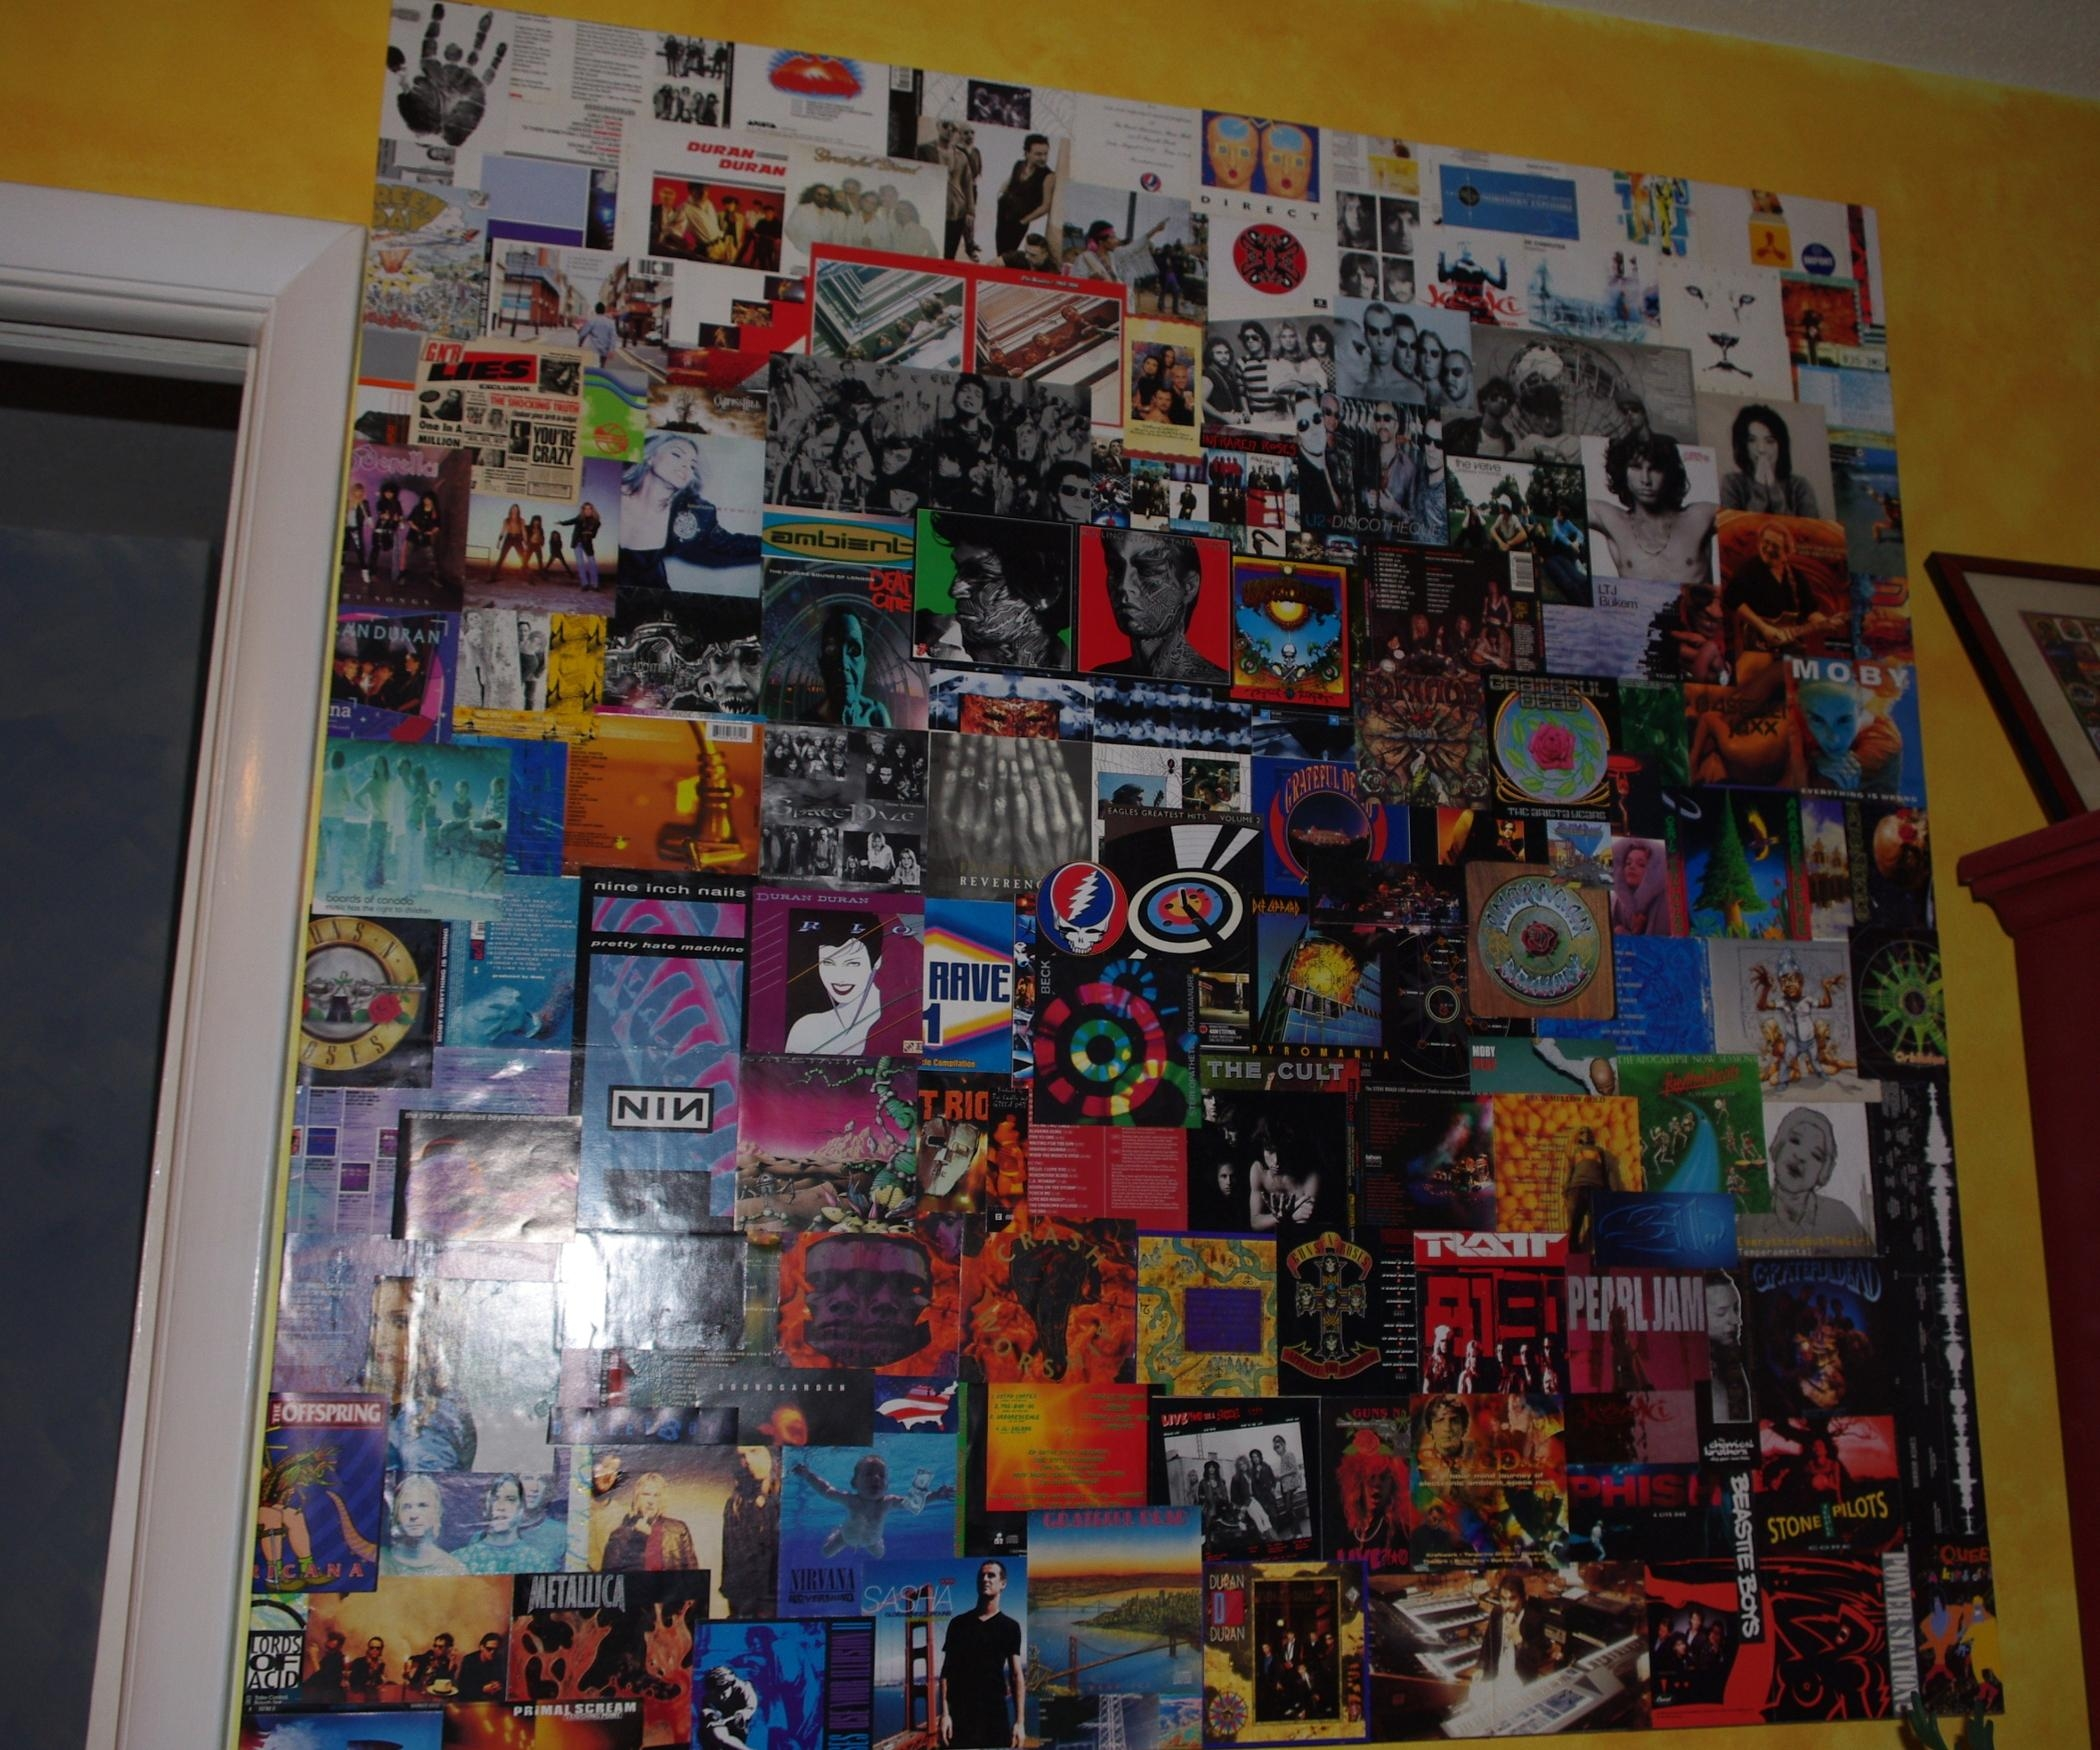 Repurpose Cd Album Cover Art In Giant Wall Collage (Image 16 of 20)